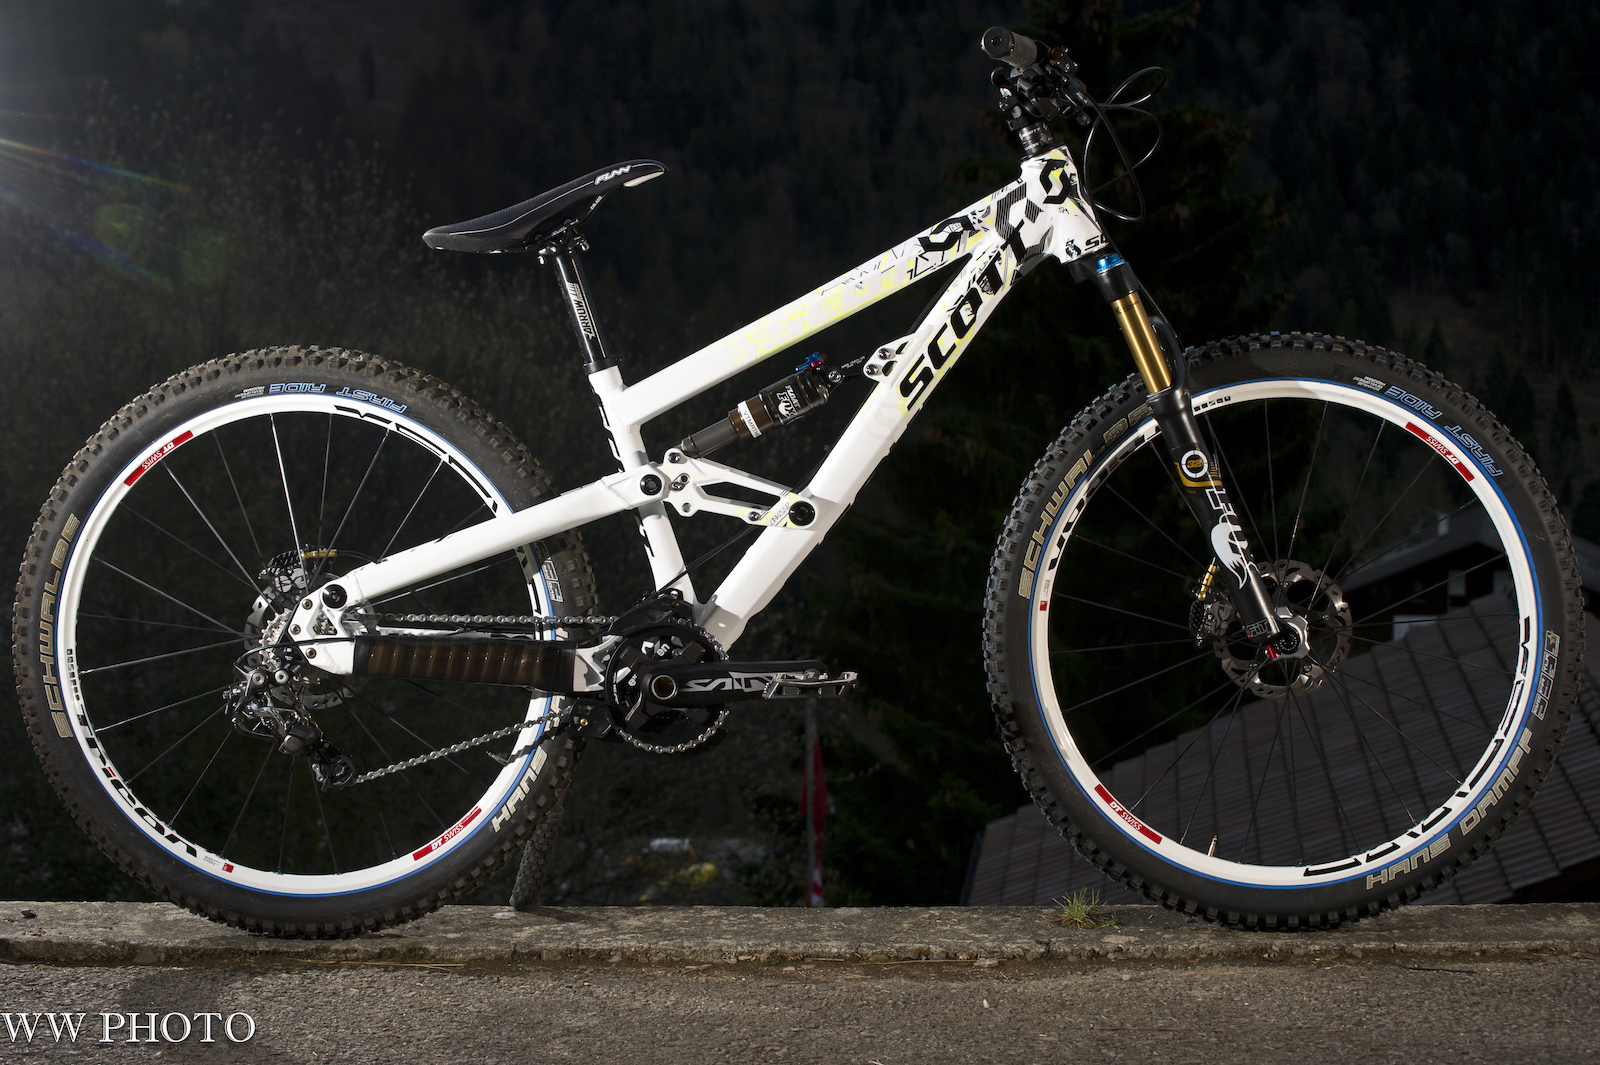 Neue SAINT Parts am SCOTT 4X Fully Prototype von Brendan Fairclough